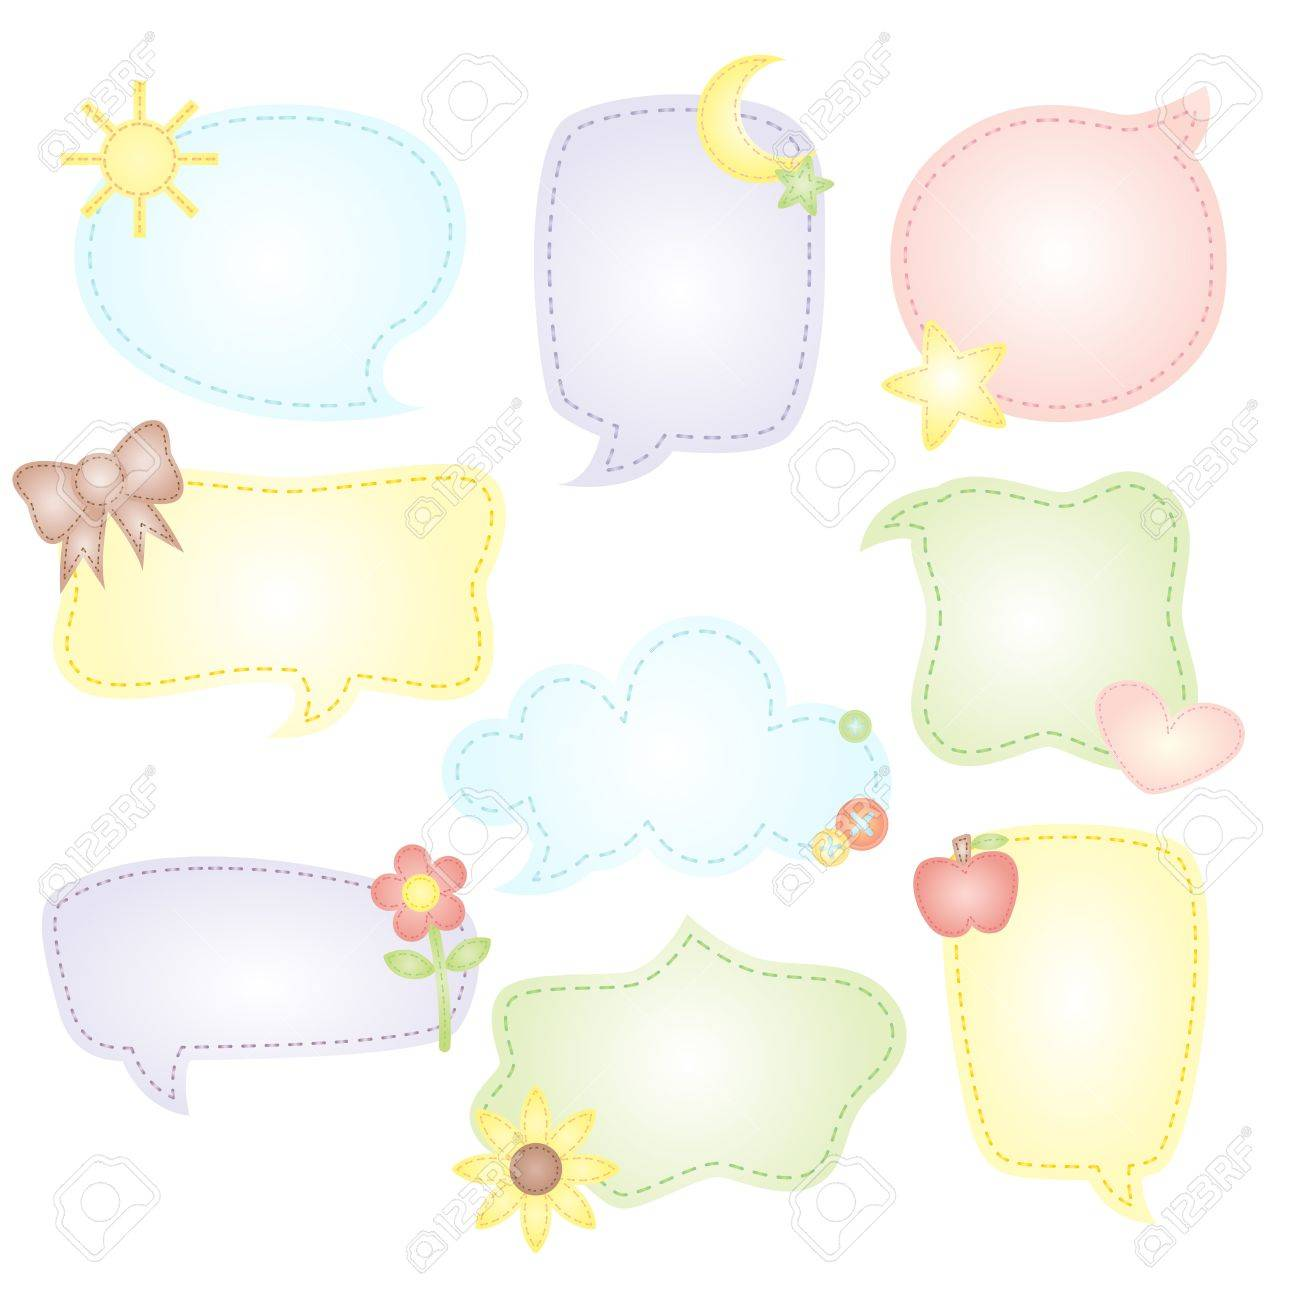 A illustration of speech bubbles drawings Stock Vector - 12145077